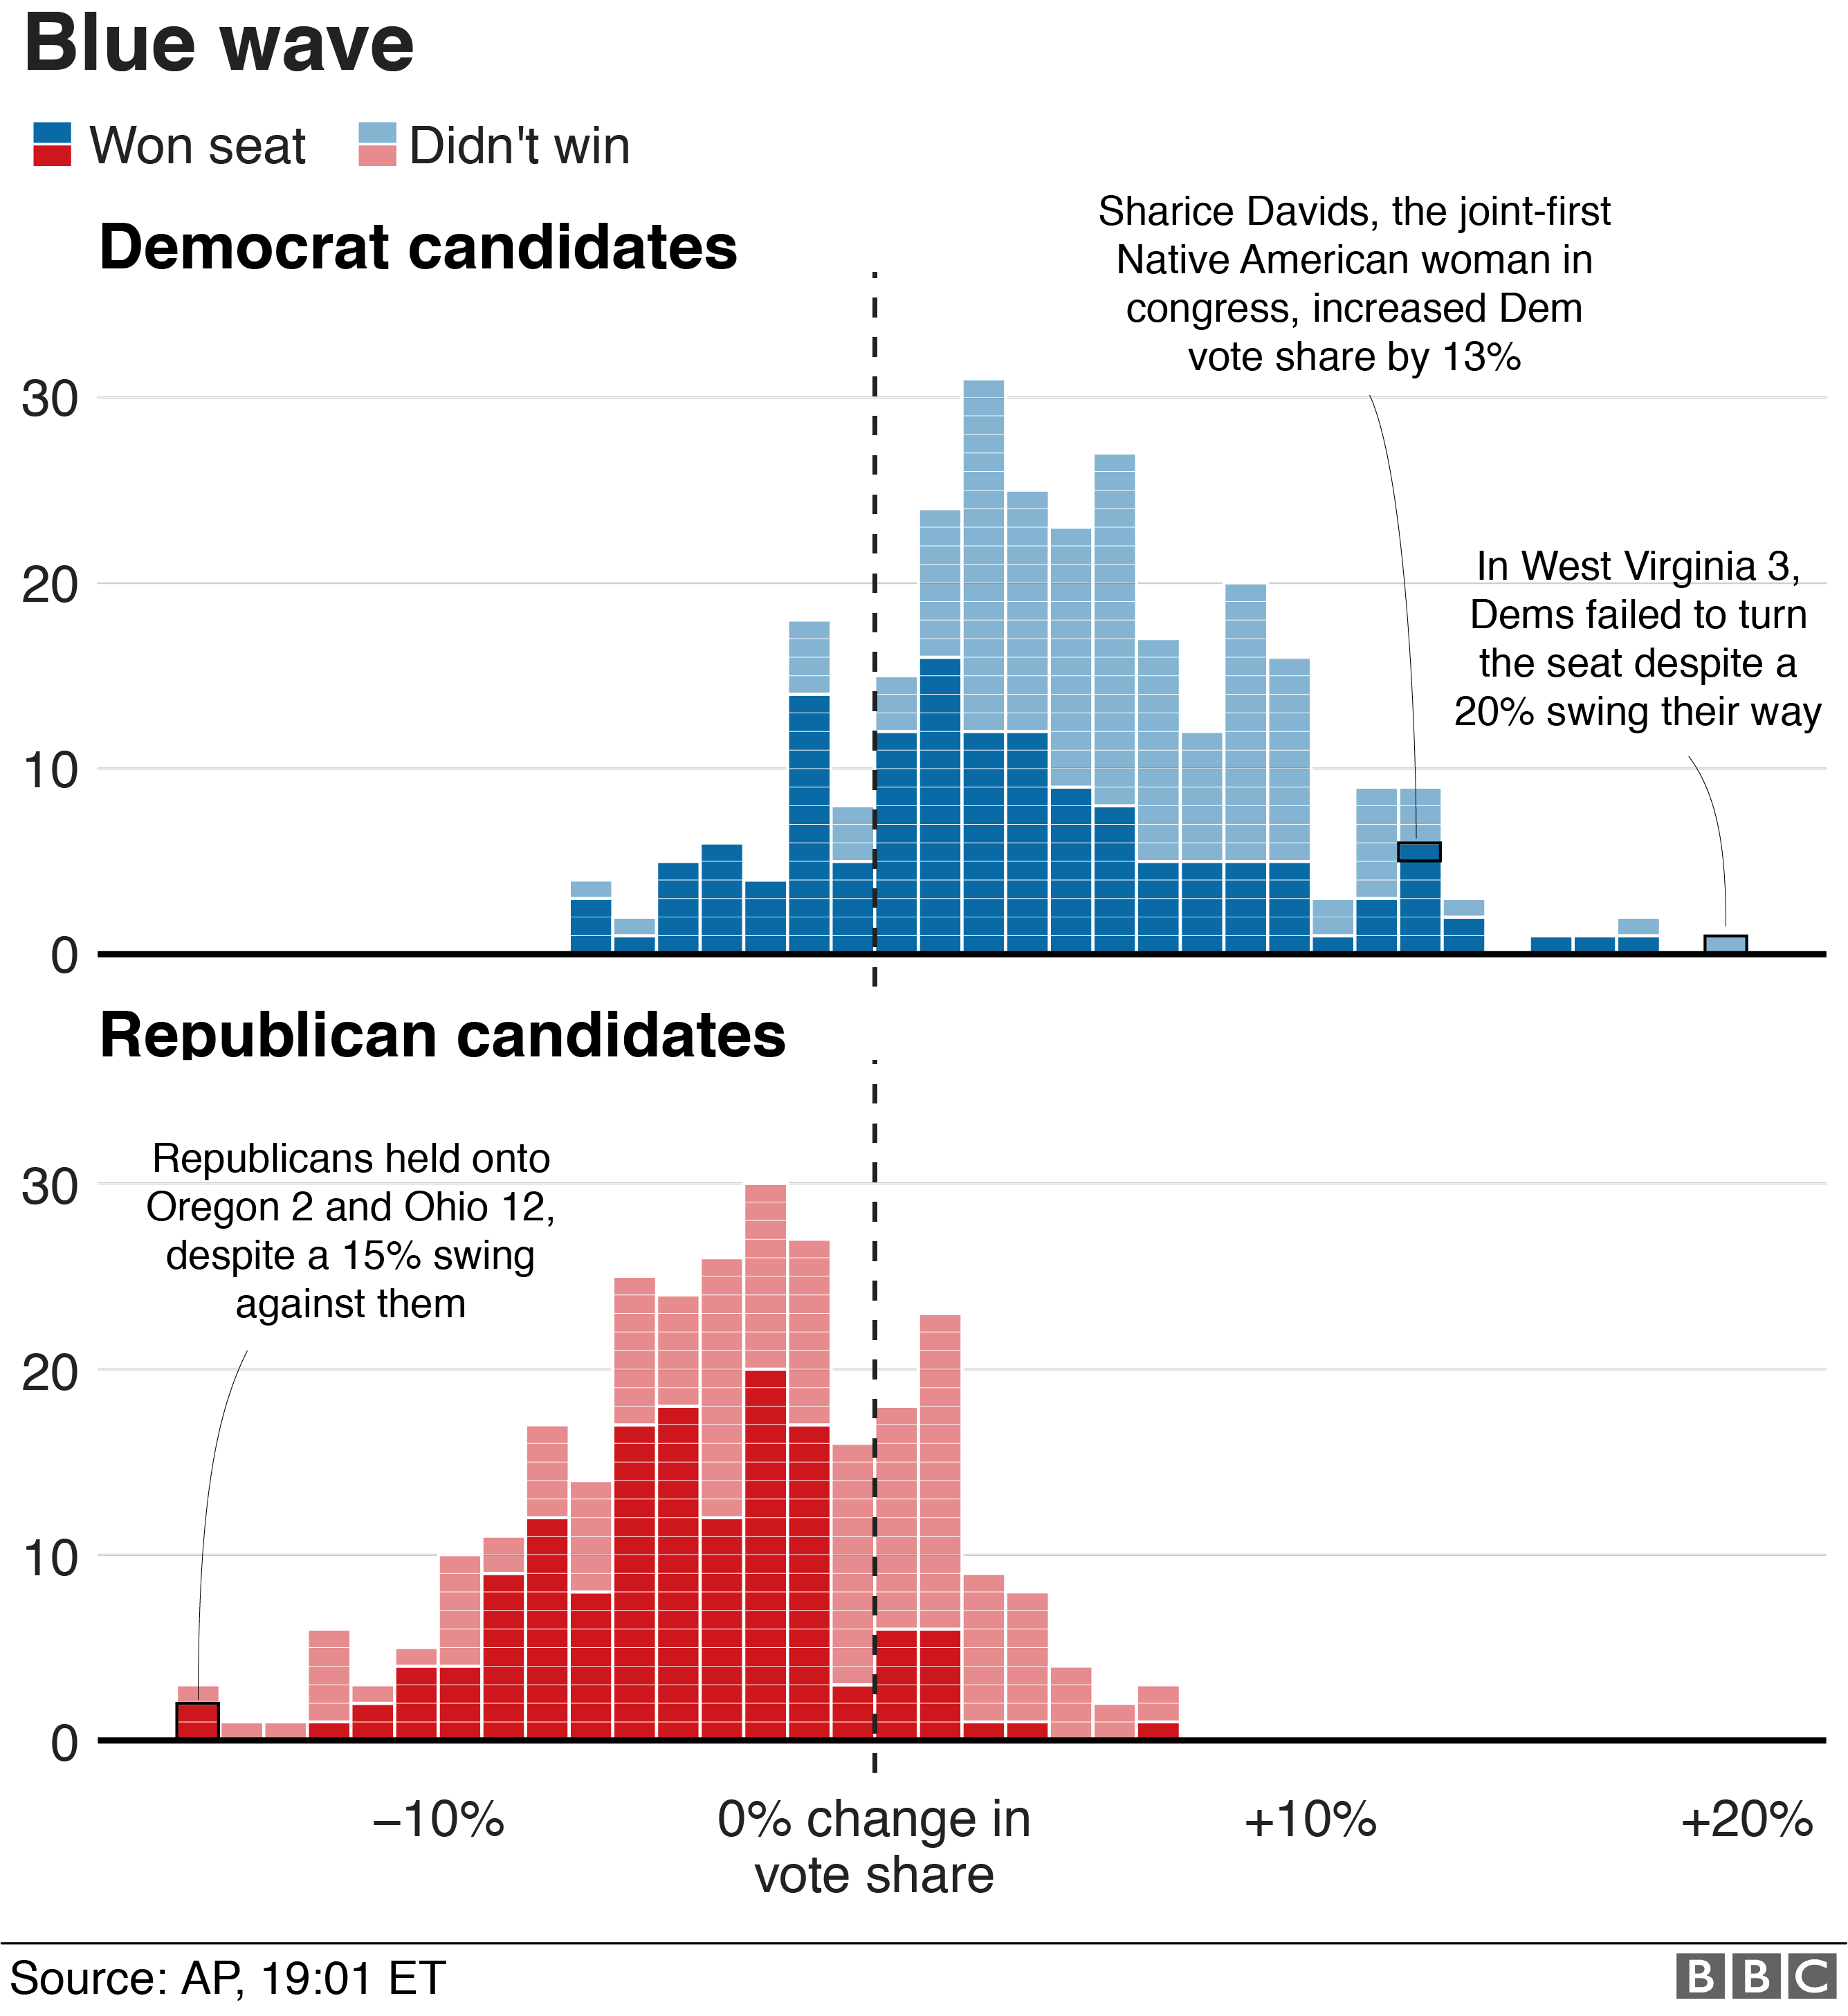 Democrats increased their vote share in 239 districts. Republicans increased in 67